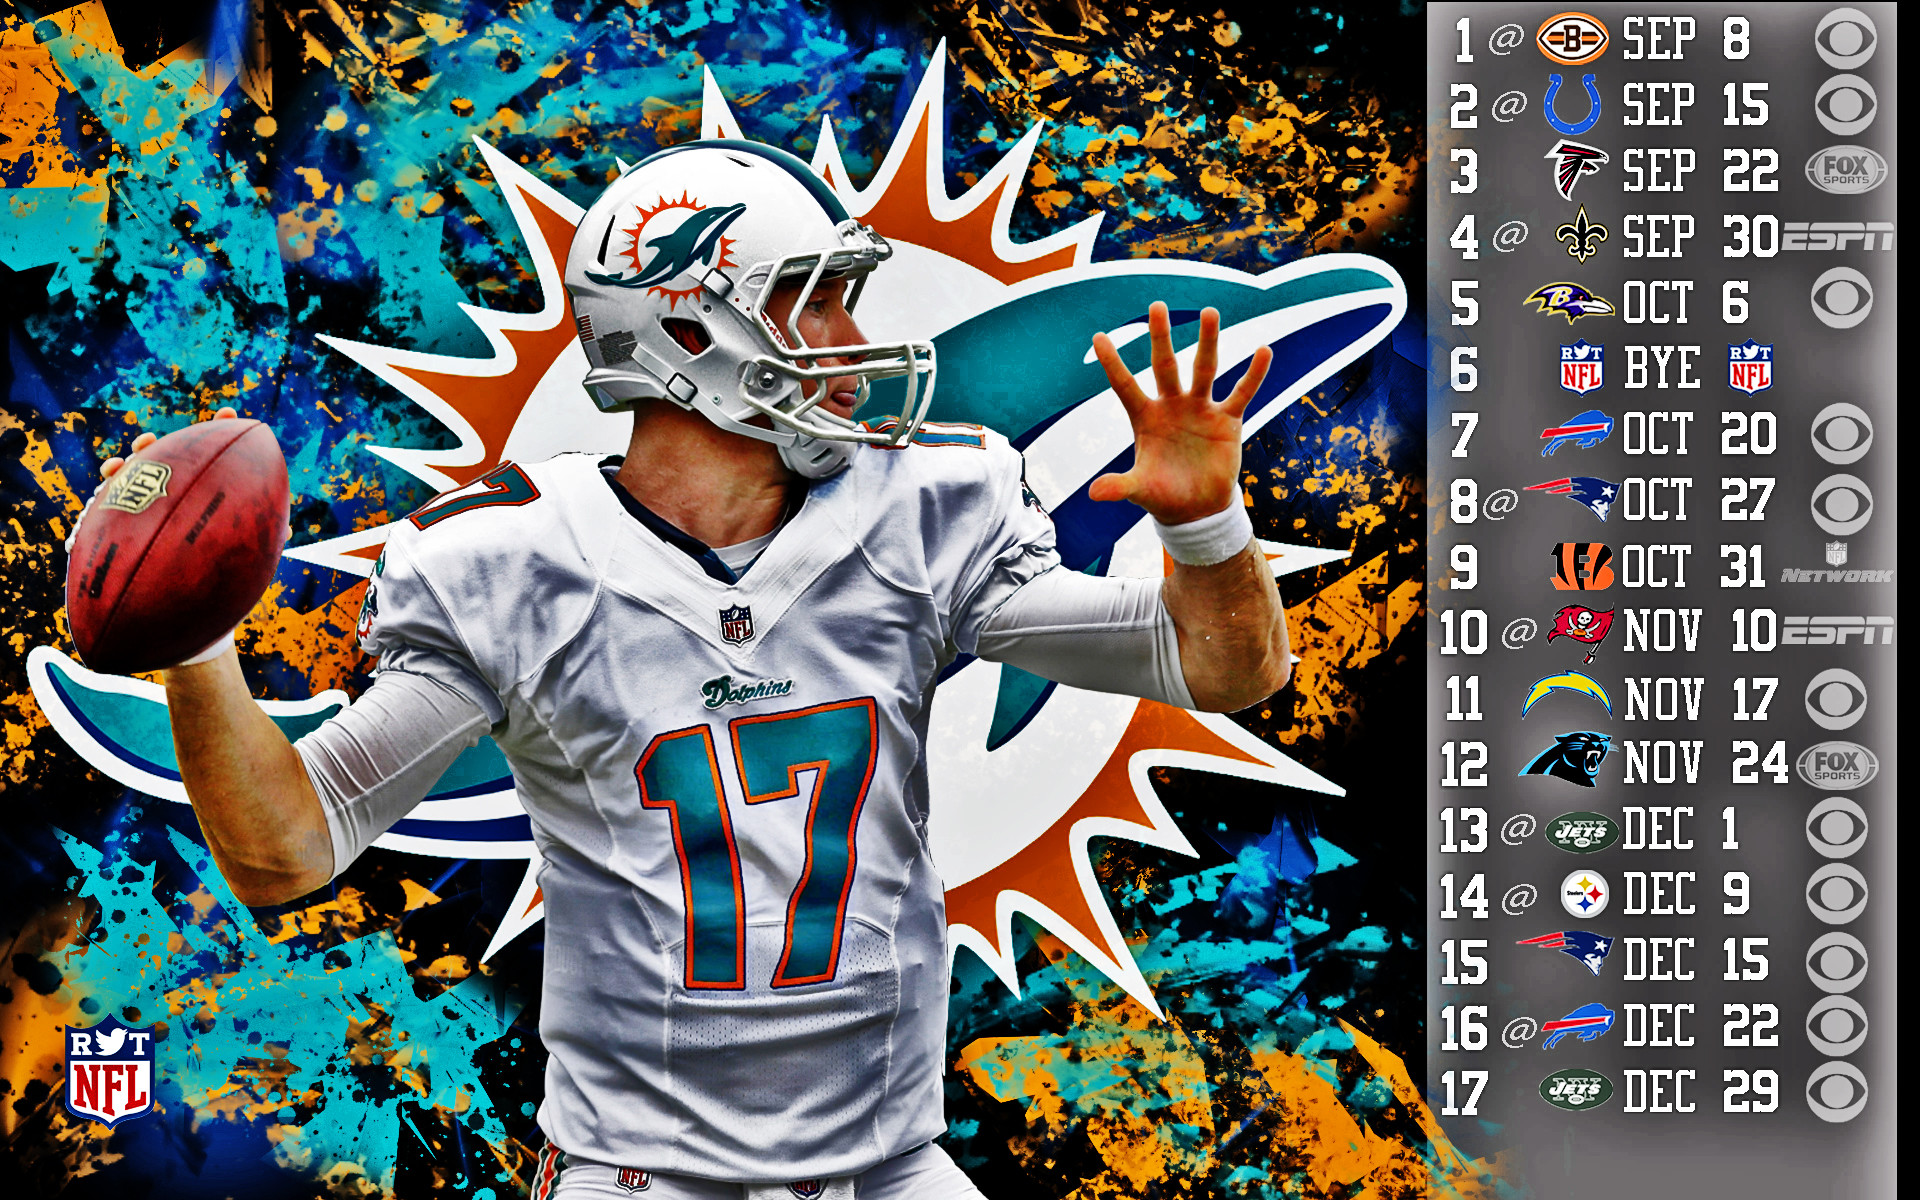 MIAMI DOLPHINS SCHEDULE 2013 images and photo galleries – fameimages .